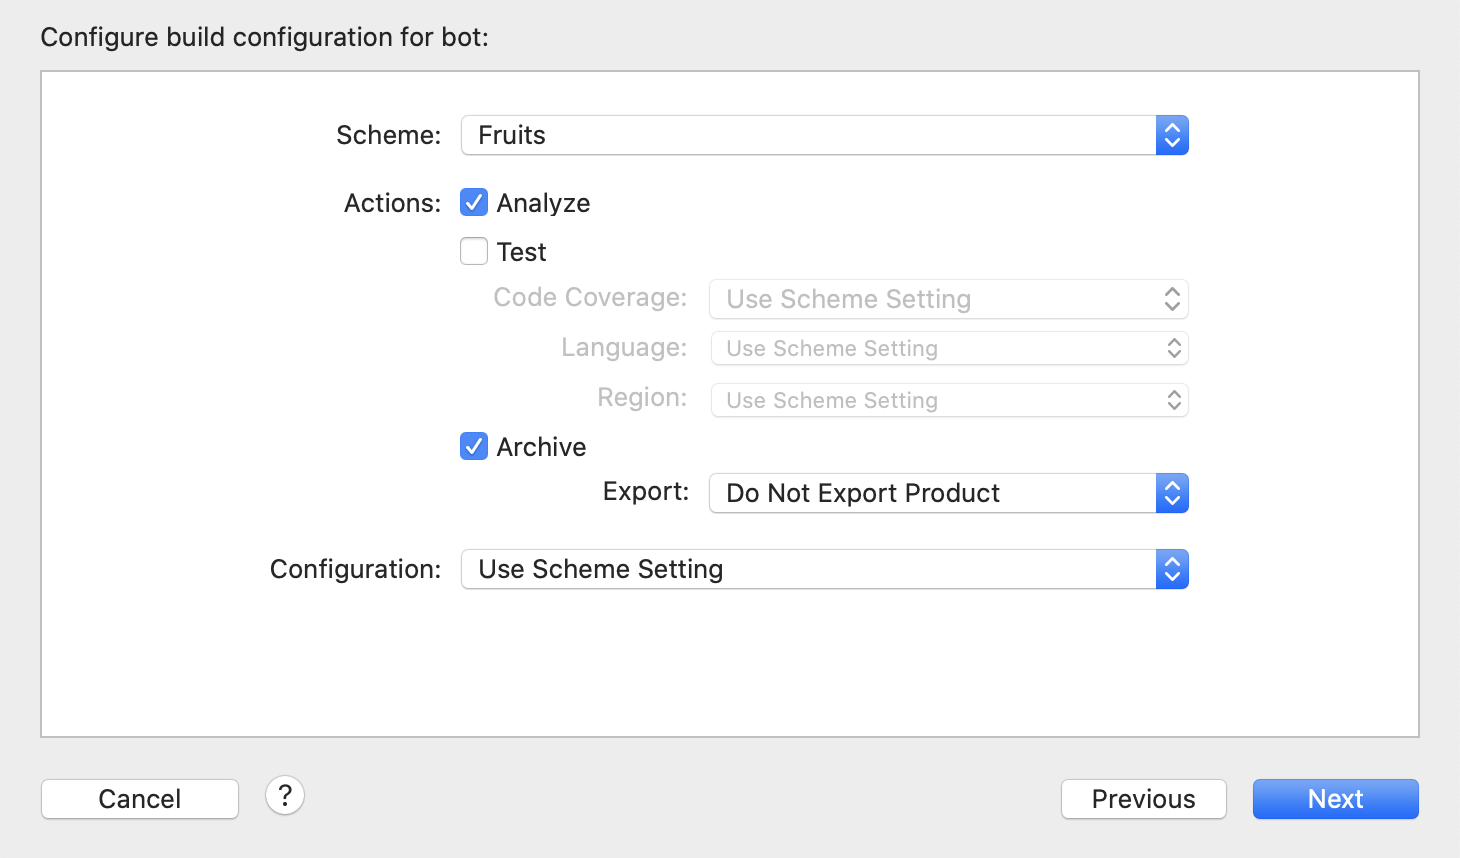 Build configuration for bot